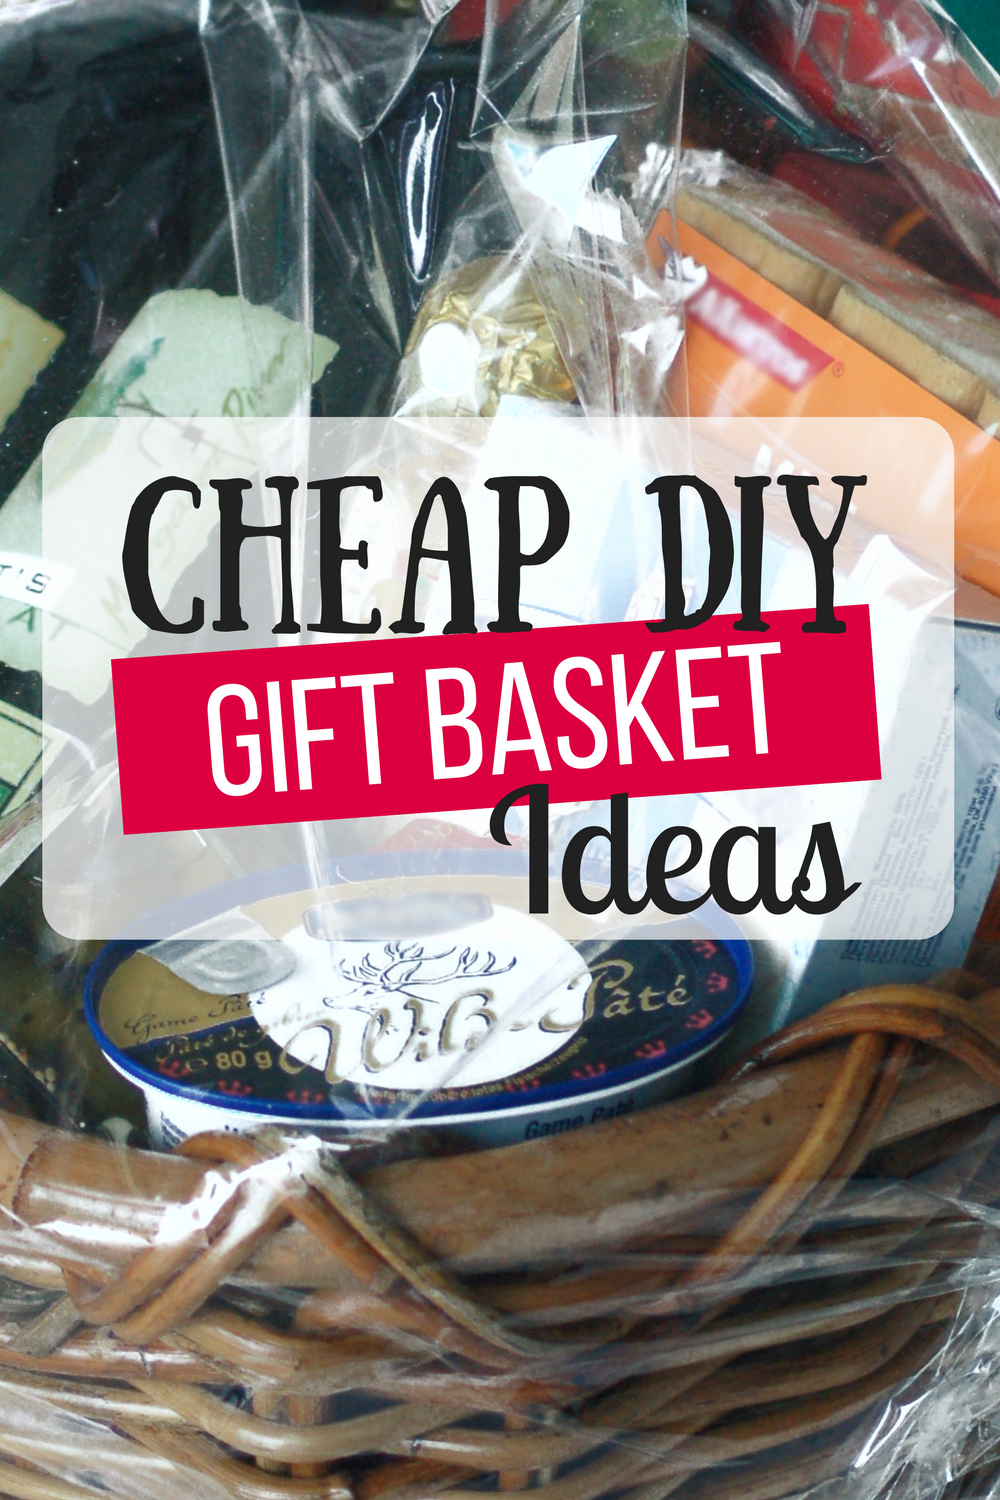 Cheap Diy Gift Baskets Diy Gifts Cheap Diy Christmas Gifts